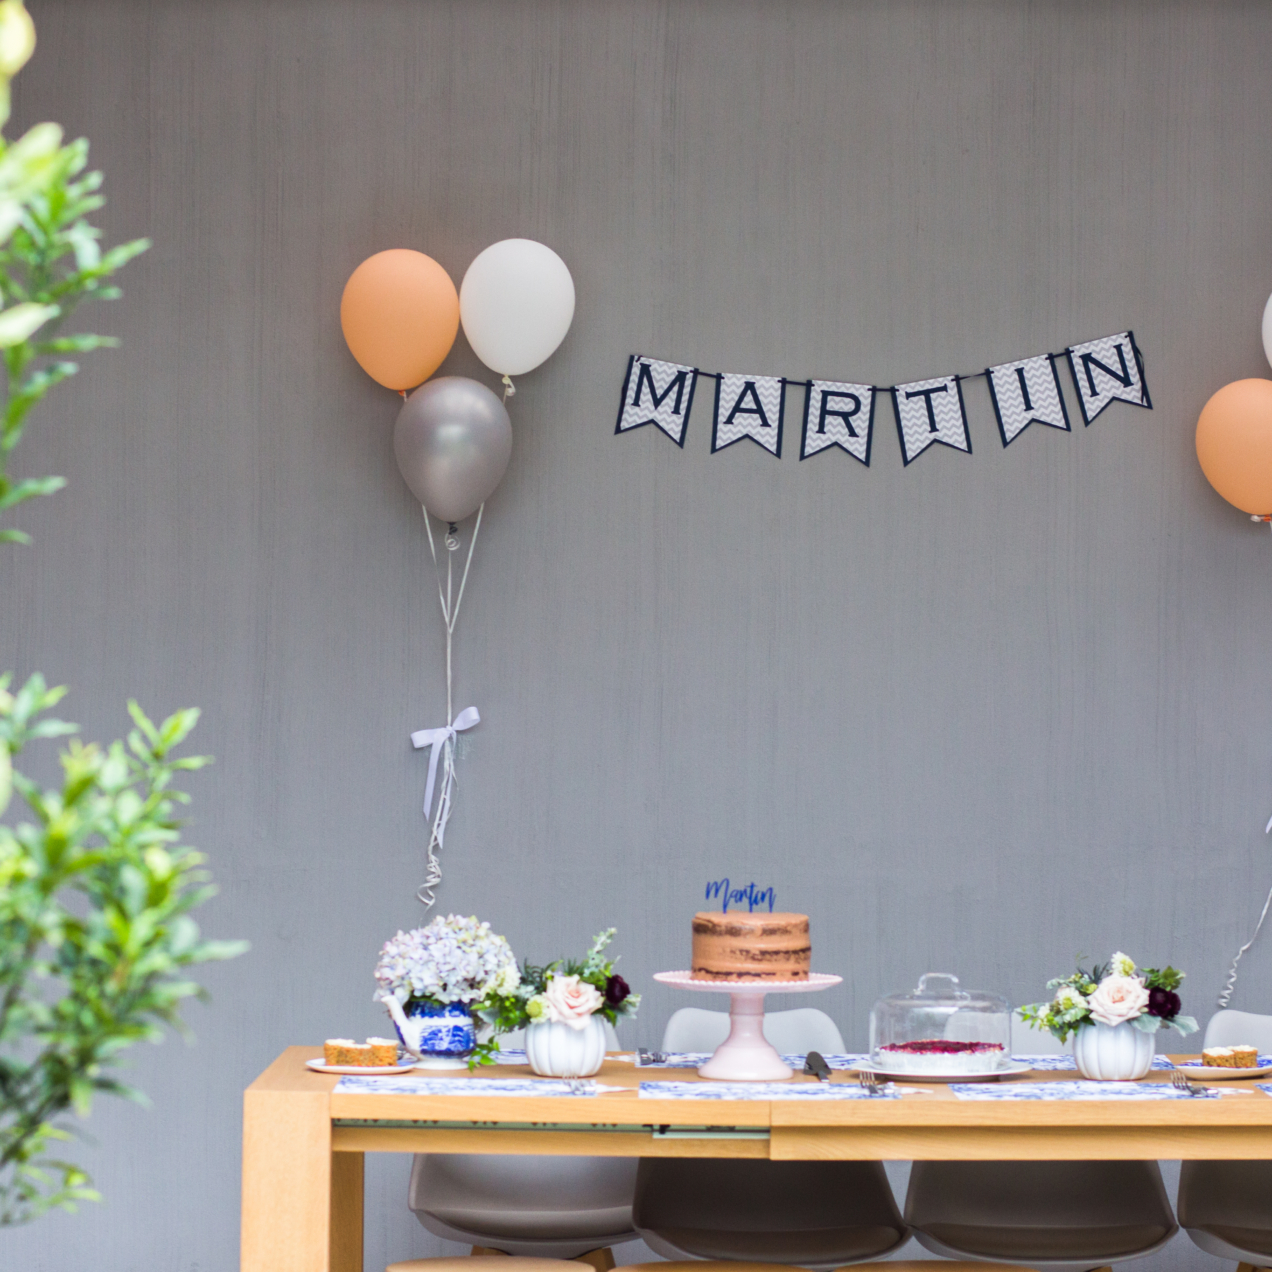 5 Tips para Organizar un Baby Shower